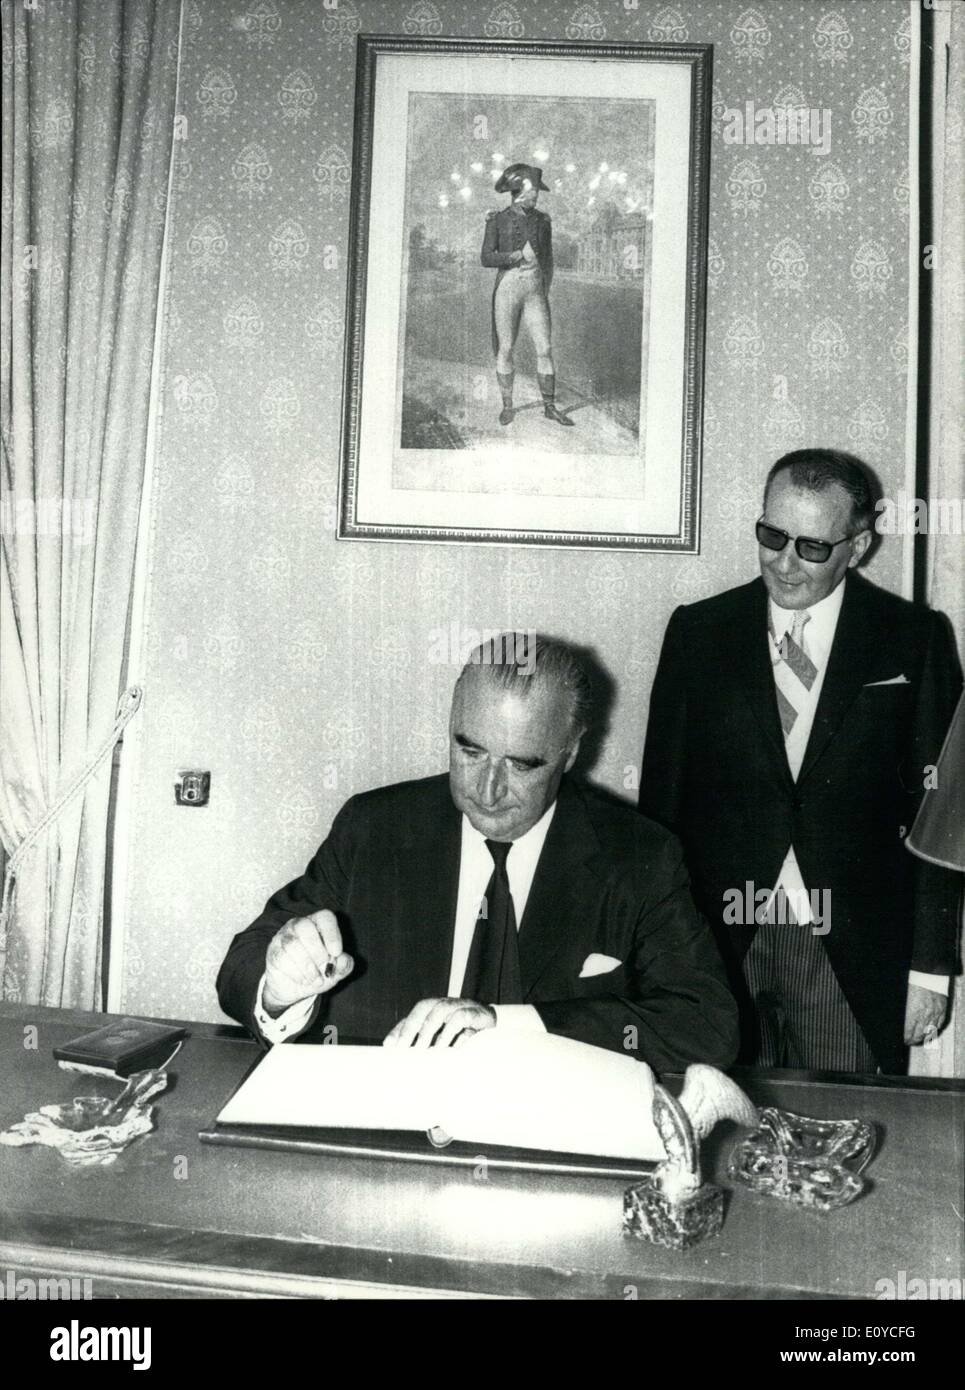 Aug. 16, 1969 - President Pompidou attended ceremonies marking the bicentennial of Napoleon I's birth. Georges Pompidou signs the ''Golden Book'' in the city hall of Ajaccio. The Mayor, Pascal Rossini is behind him. - Stock Image